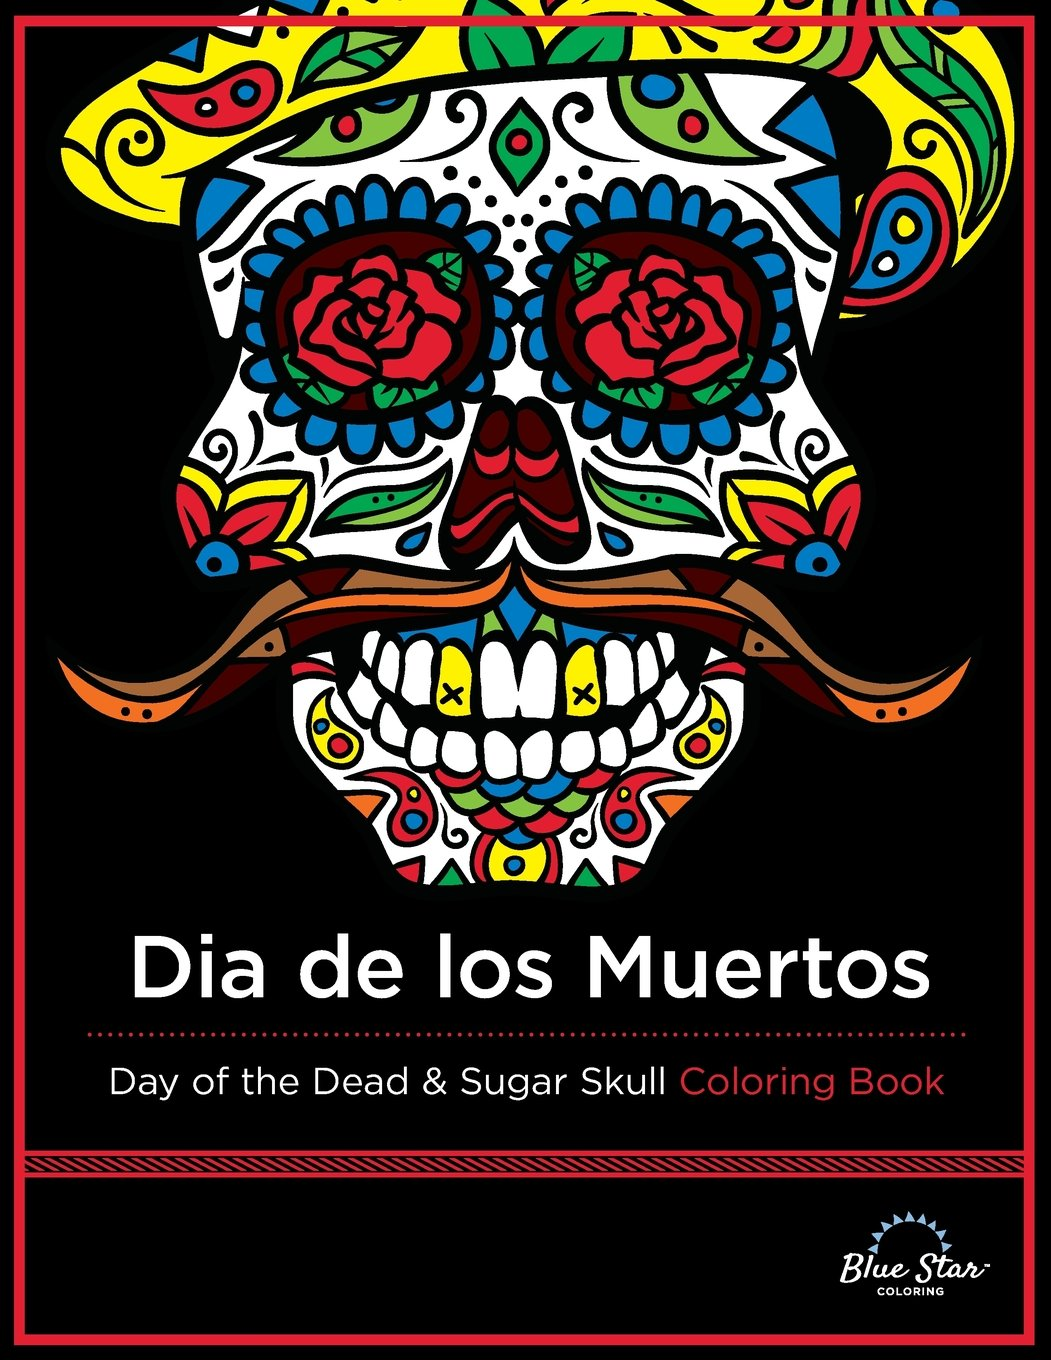 dia de los muertos day of the dead and sugar skull coloring book